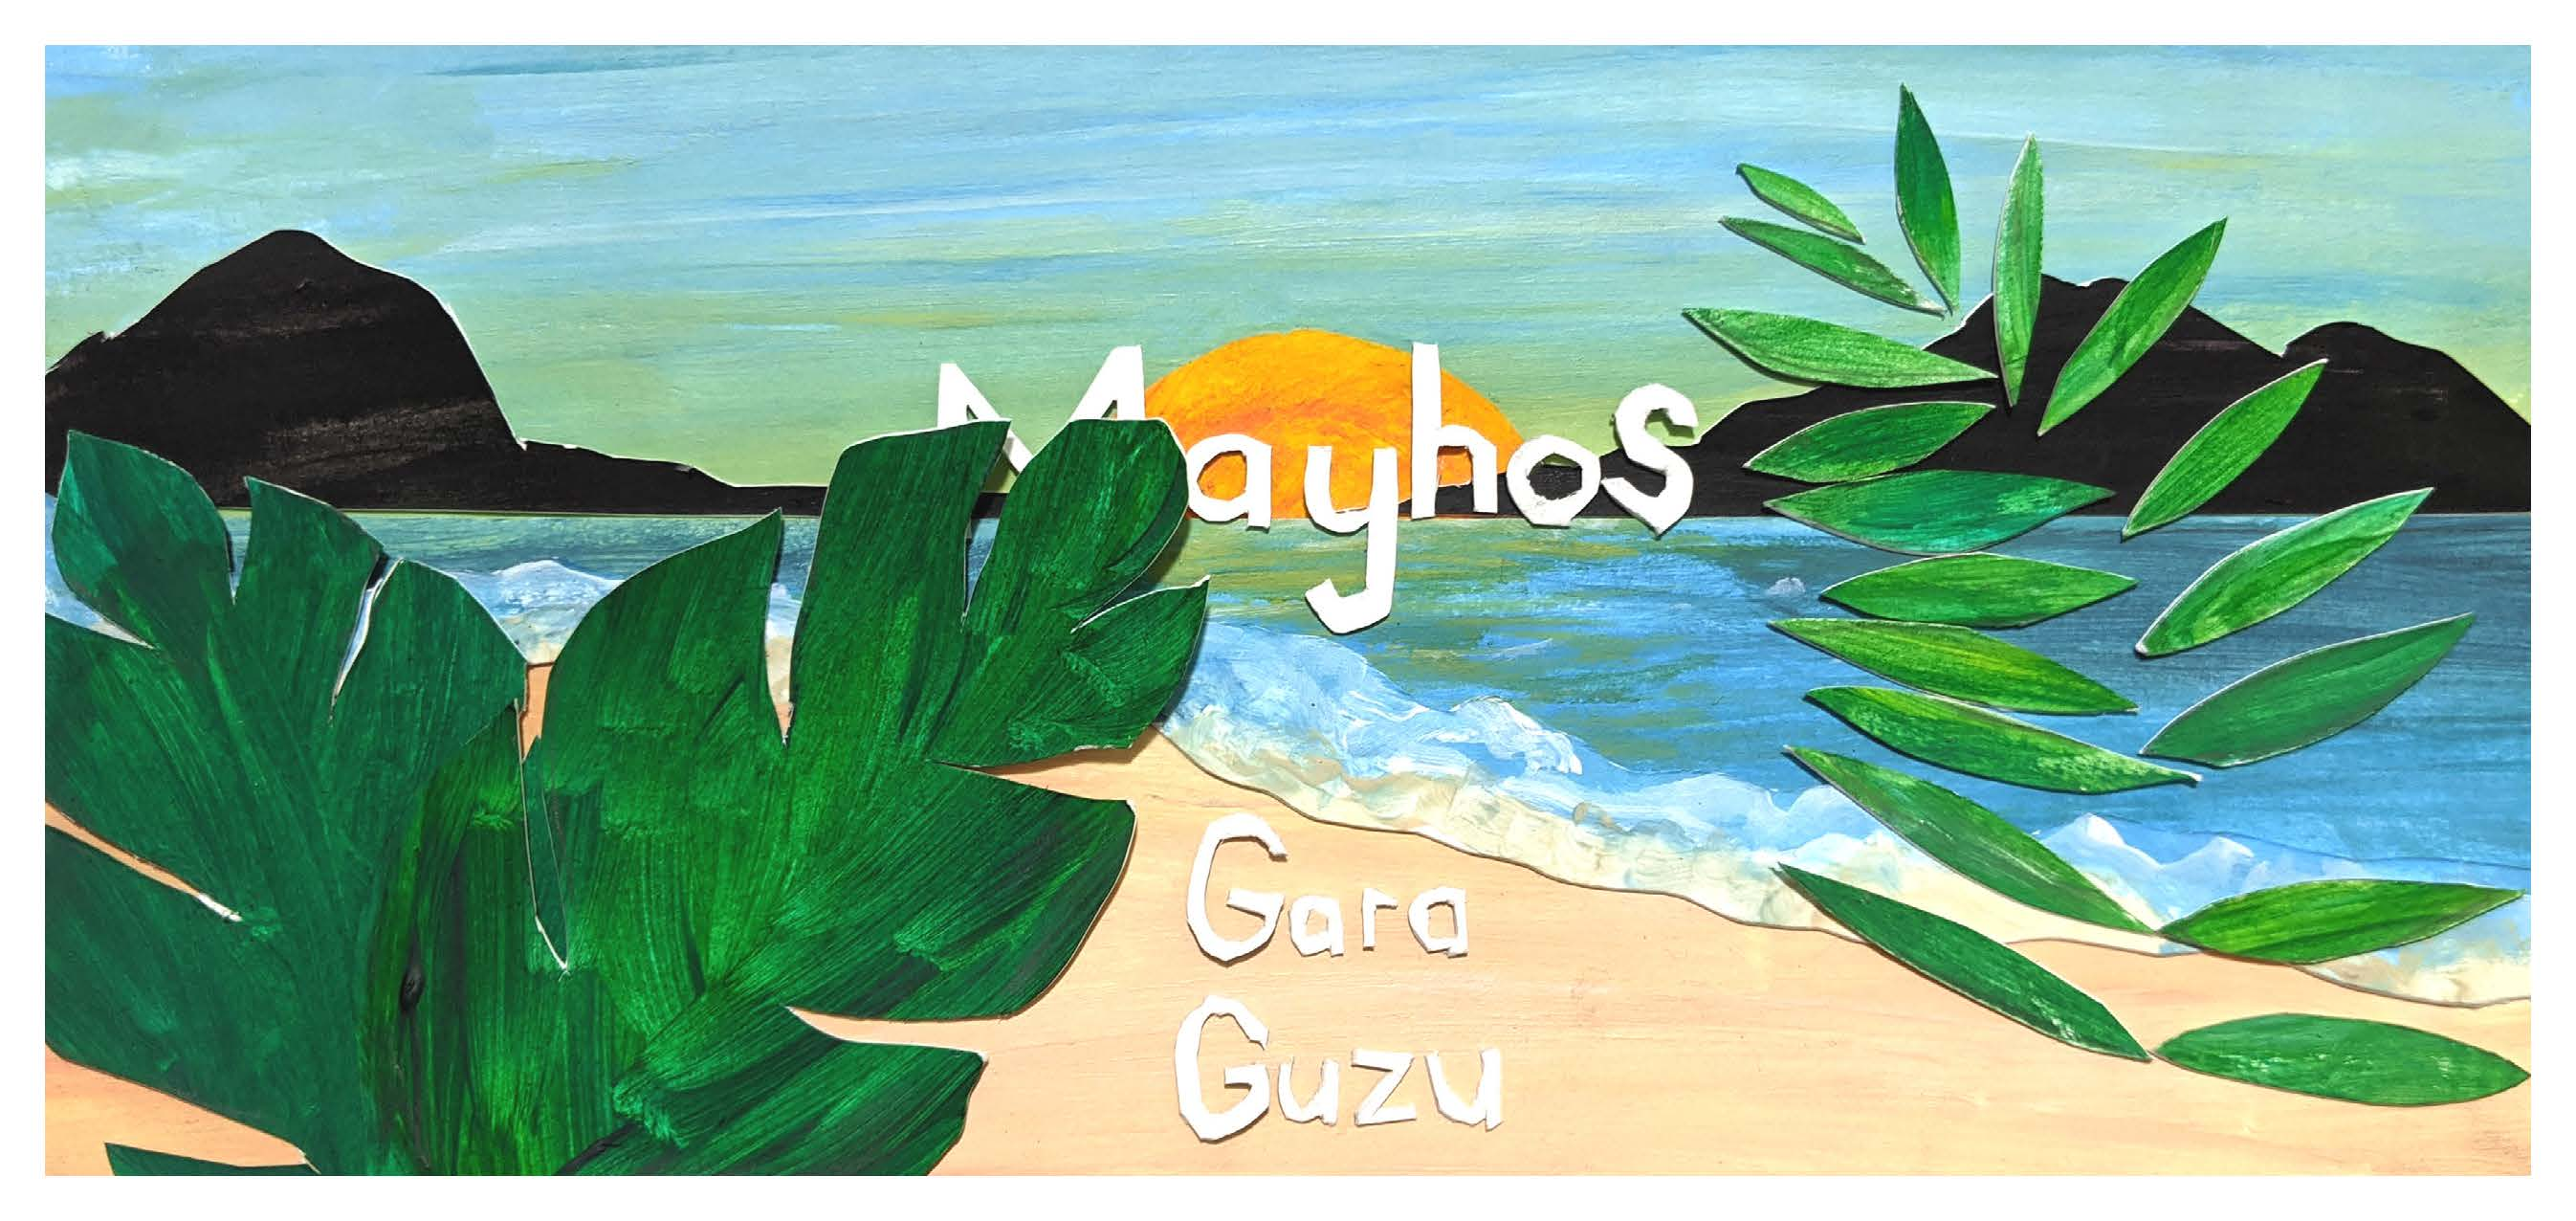 Mayhos beer label, with a sun setting over a beach